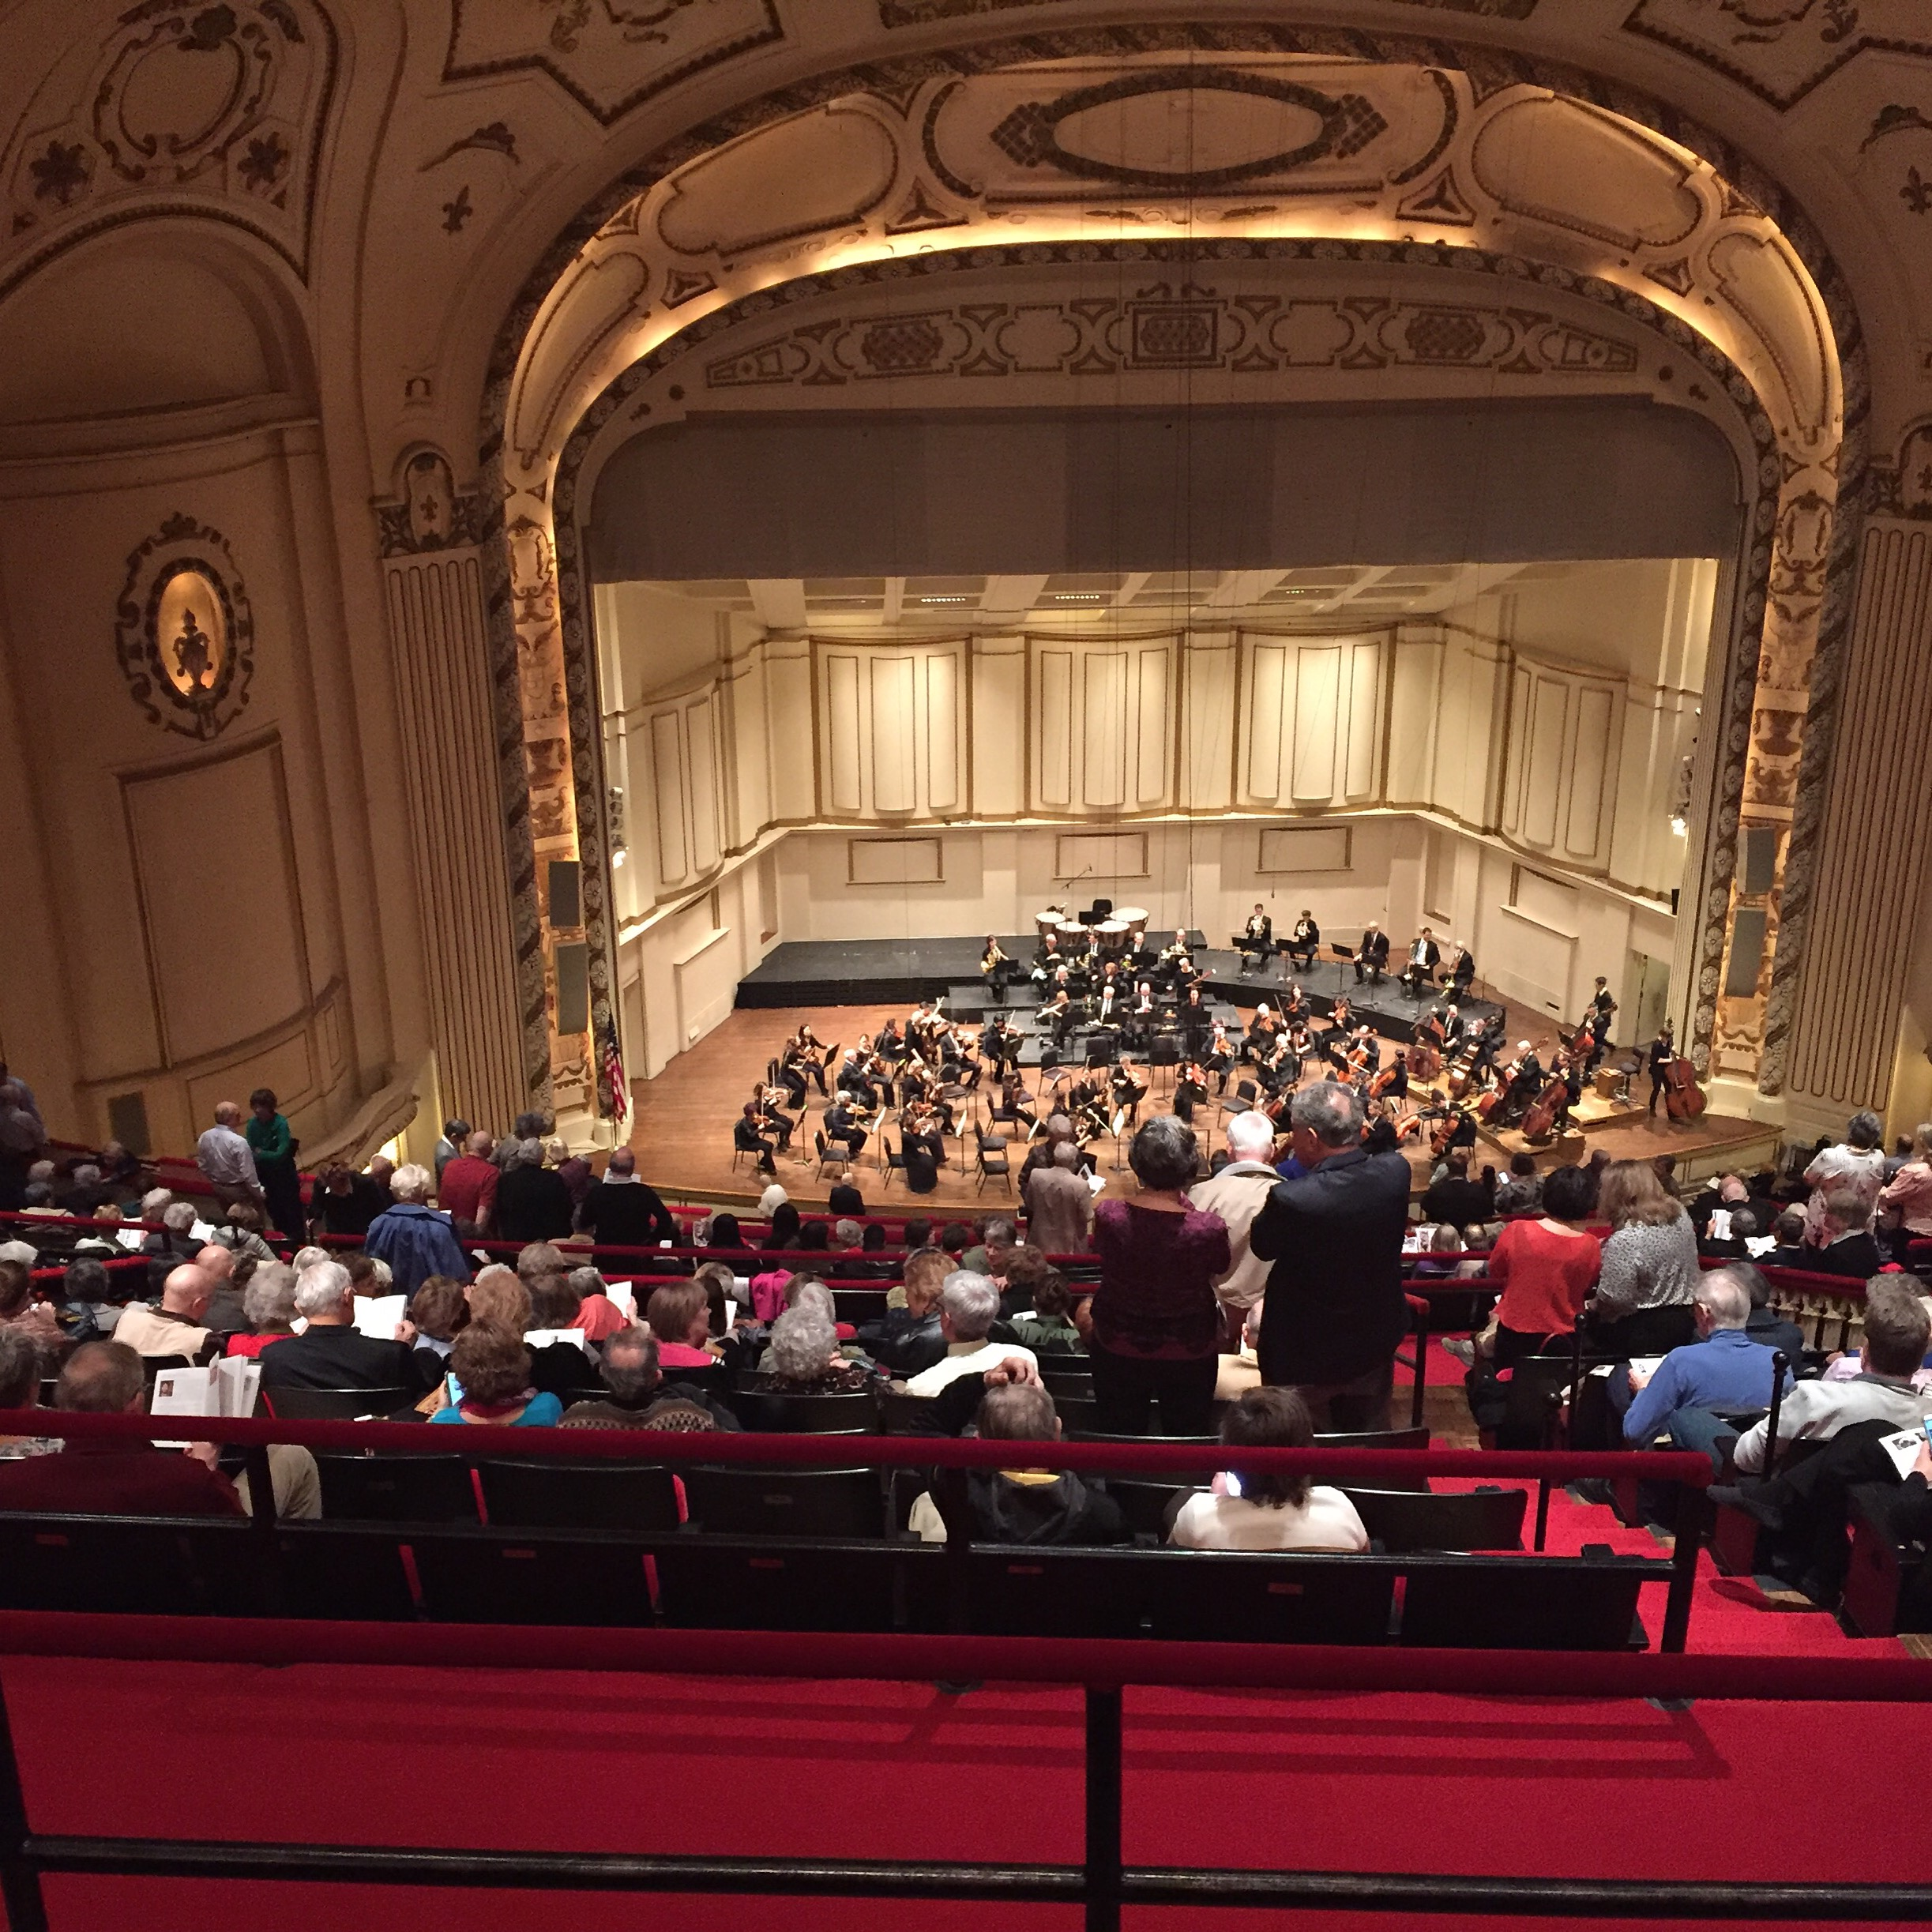 St. Louis Symphony - The St. Louis Symphony Orchestrawas founded in 1880 by Joseph Otten as the St. Louis Choral Society, and the St. Louis Symphony is the second-oldest professional symphony orchestra in the United States, preceded only by the New York Philharmonic. Its principal concert venue is Powell Symphony Hall.